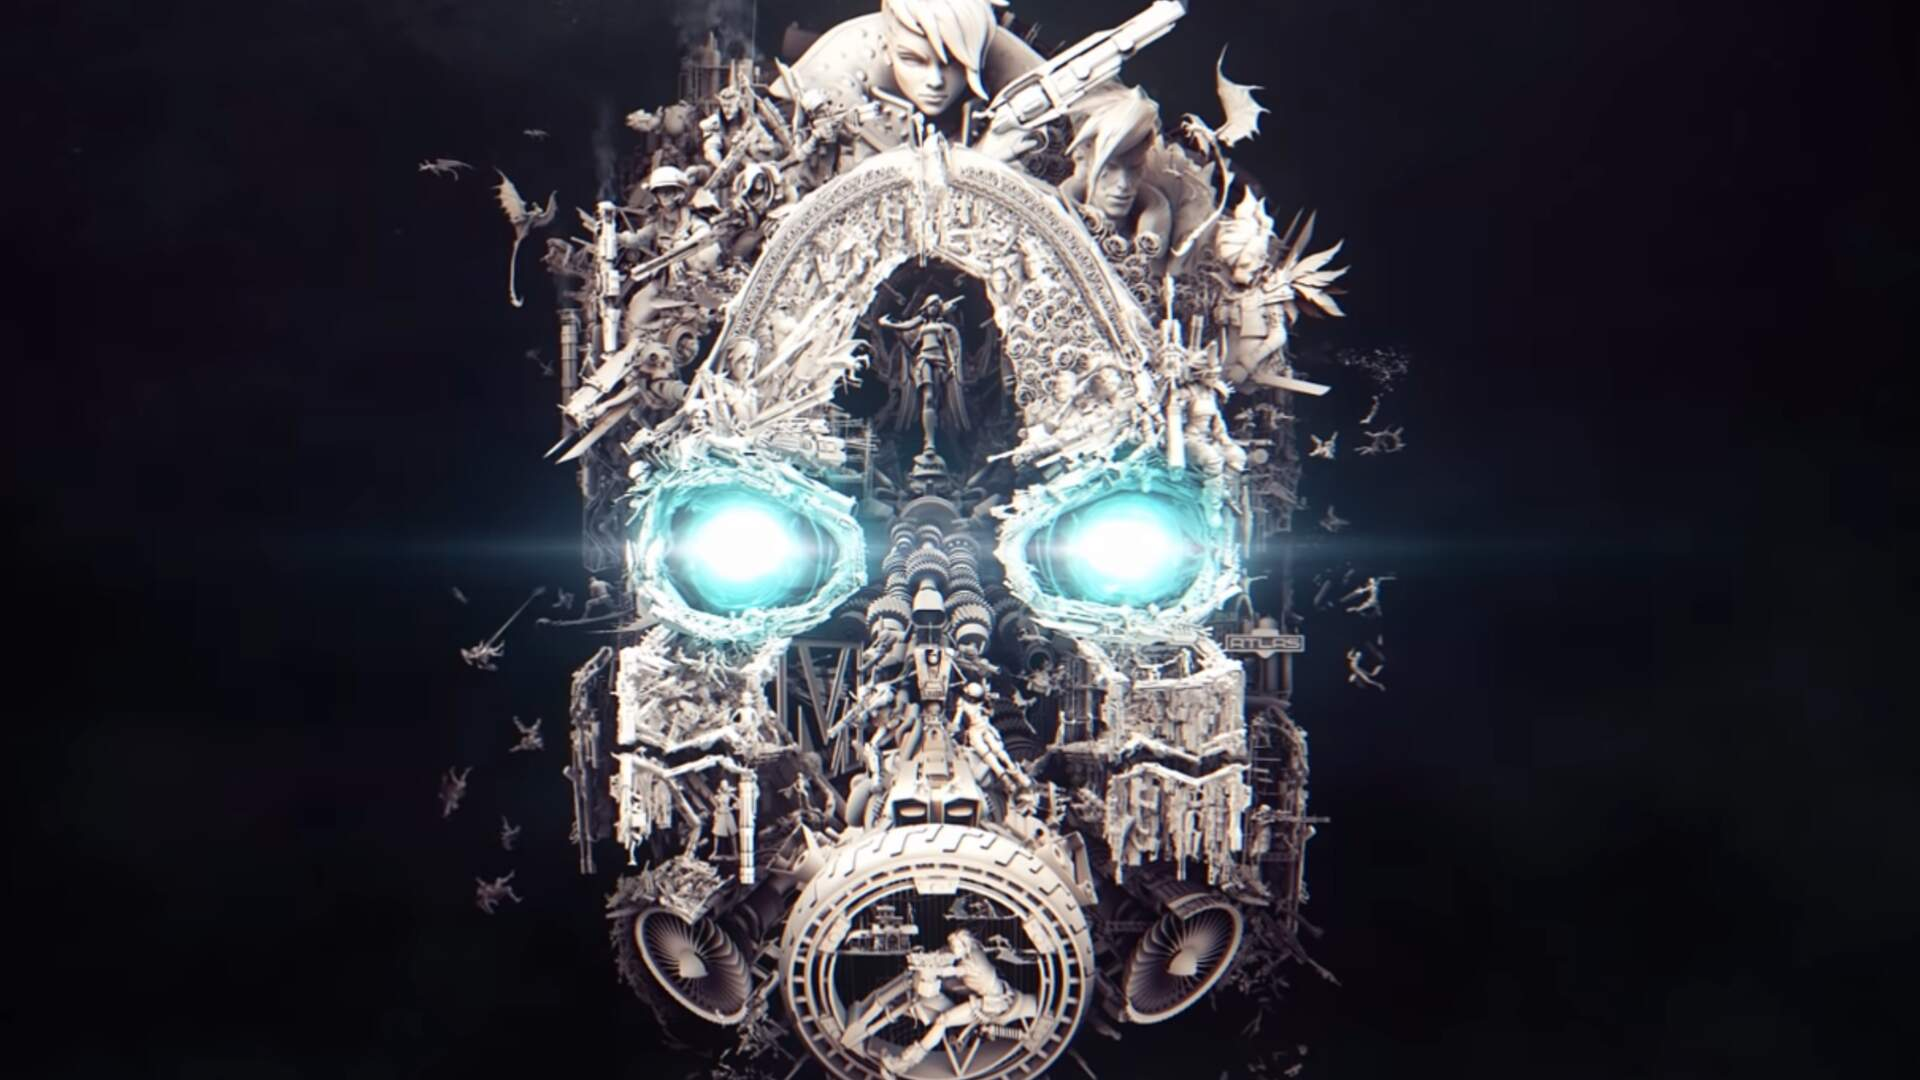 We Think This Is a Teaser for Borderlands 3, but We'll Find out Tomorrow